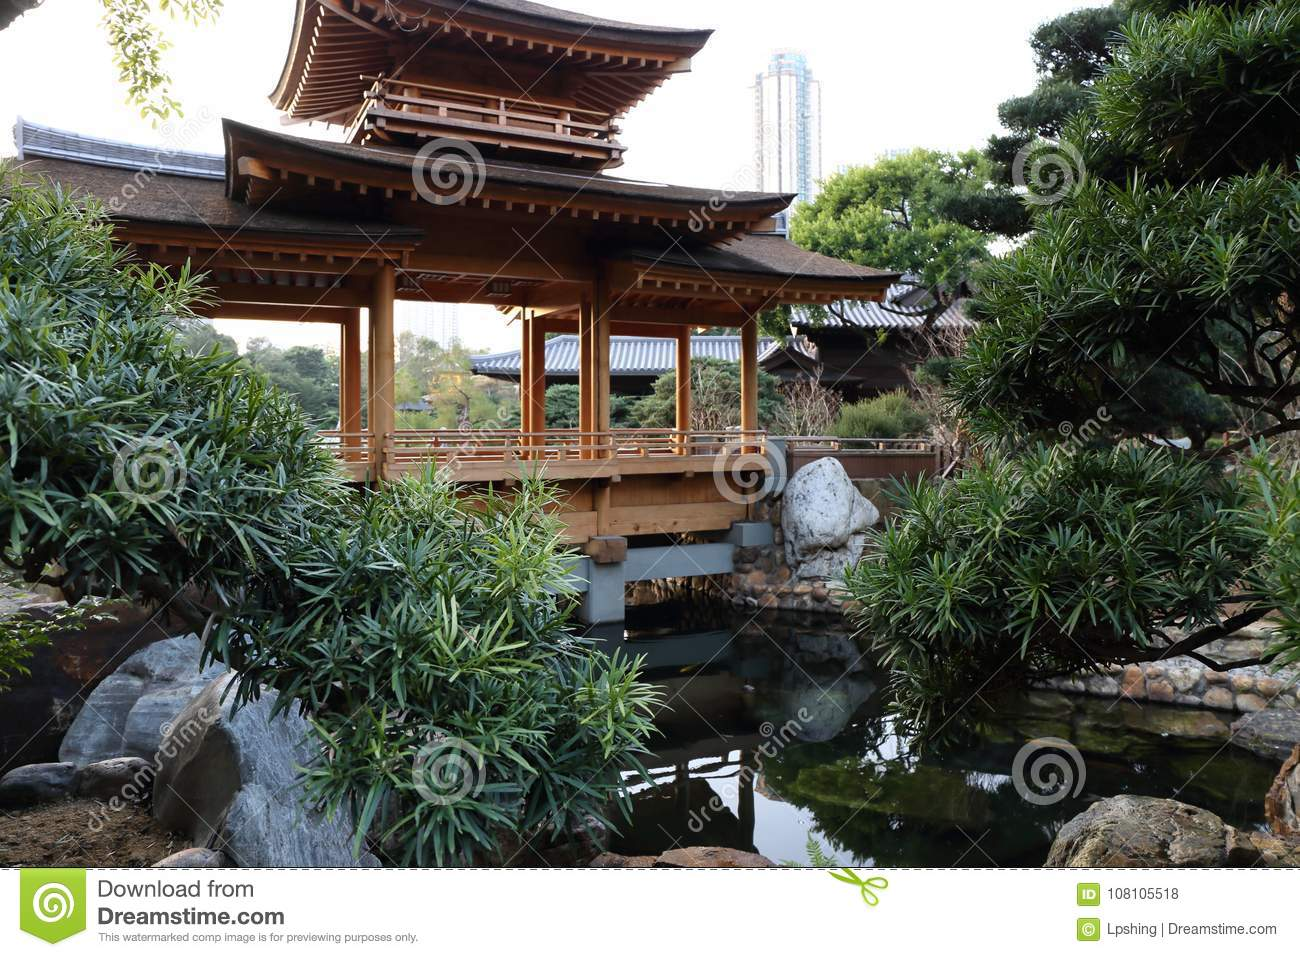 GroBartig Download Chinese Style Garden Stock Photo. Image Of Europe, Photo    108105518